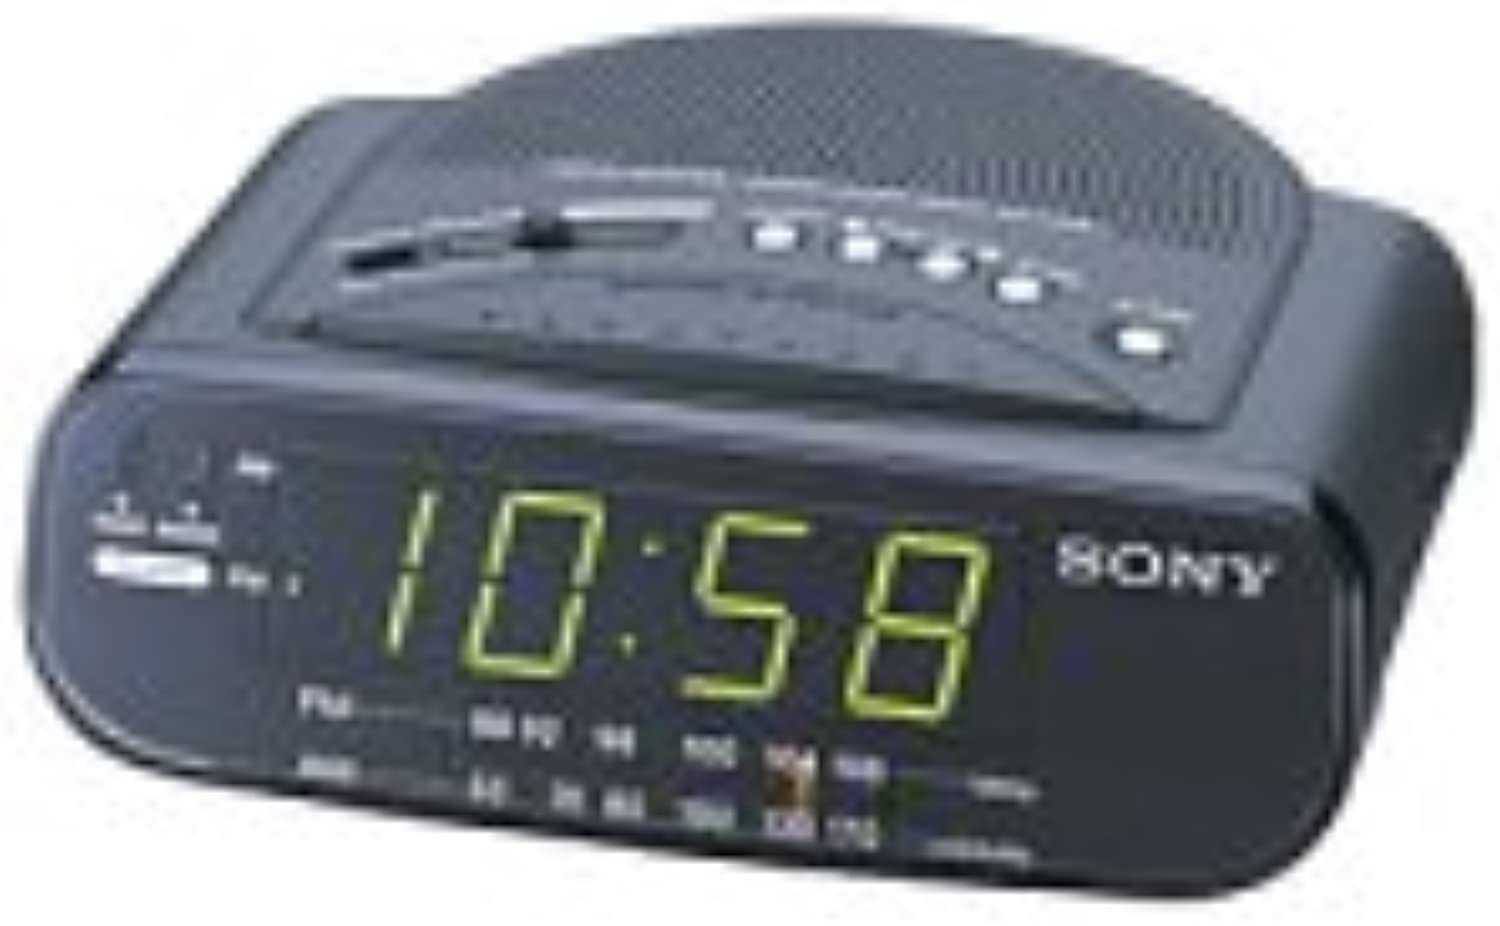 Sony ICF-C212 FM AM Clock Radio with Full Power Back-up (Black) (Discontinued by Manufacturer)